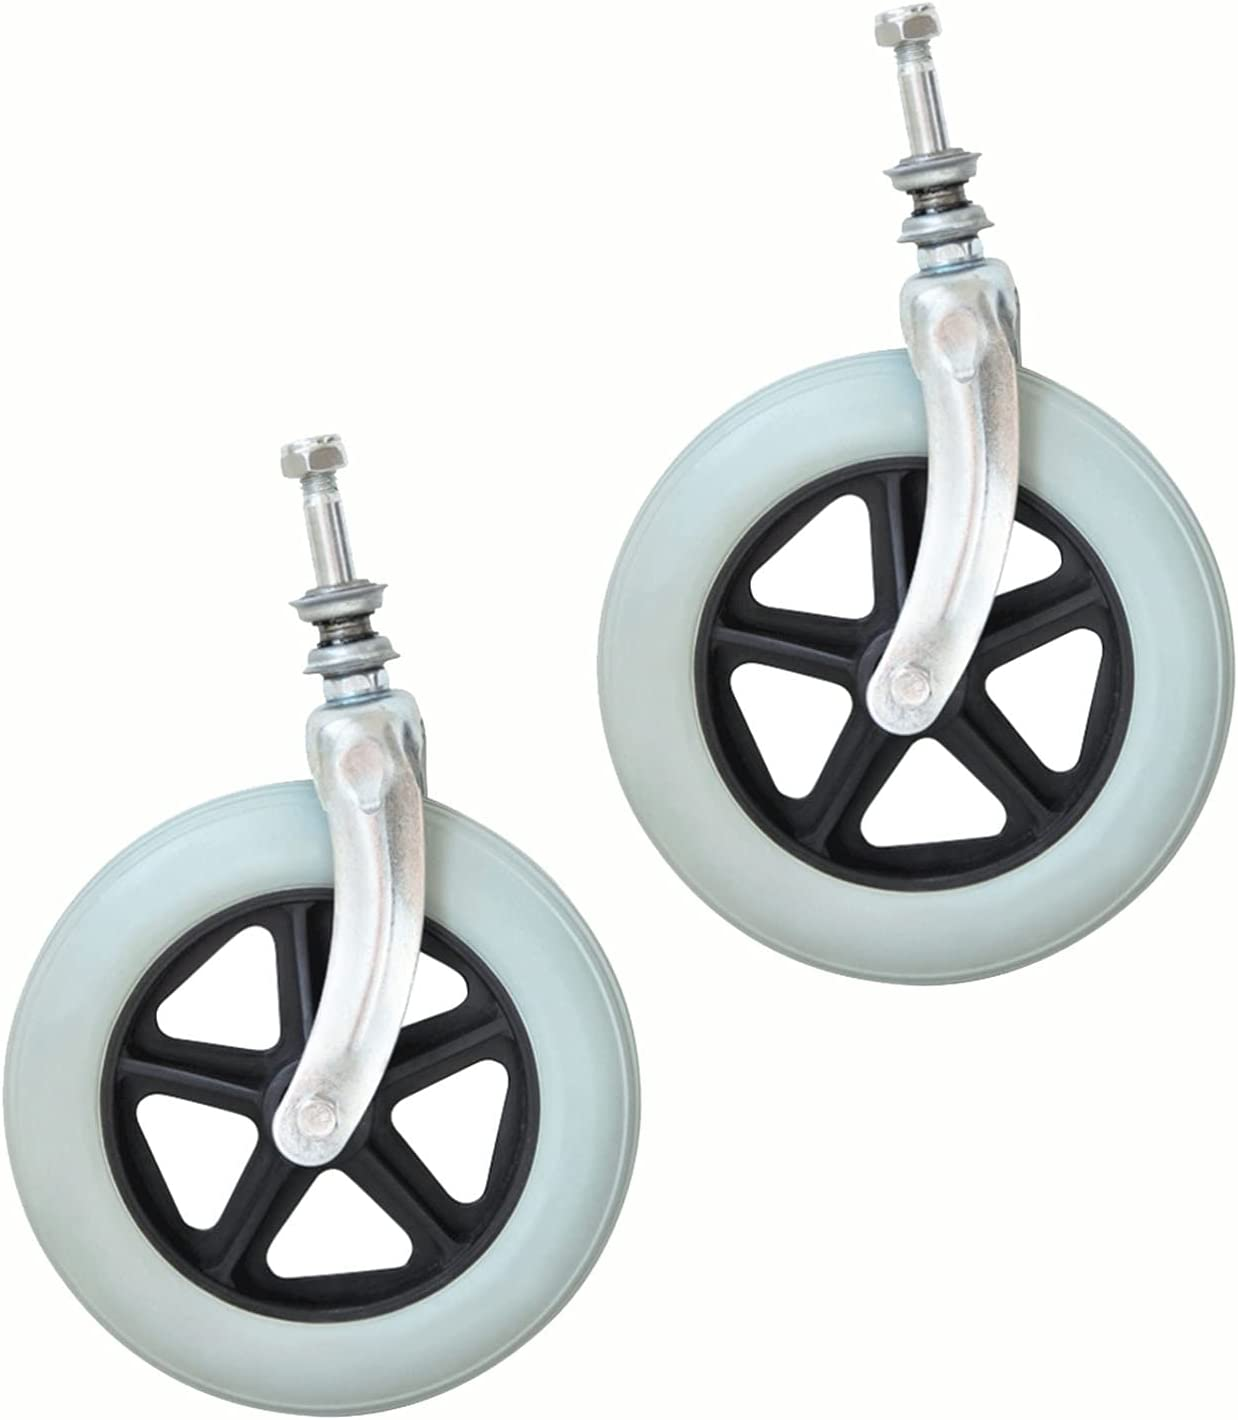 ASDFGHJ Two Small Gray Courier shipping free shipping Challenge the lowest price of Japan Front Rotating Wheels Casters Wheelchair